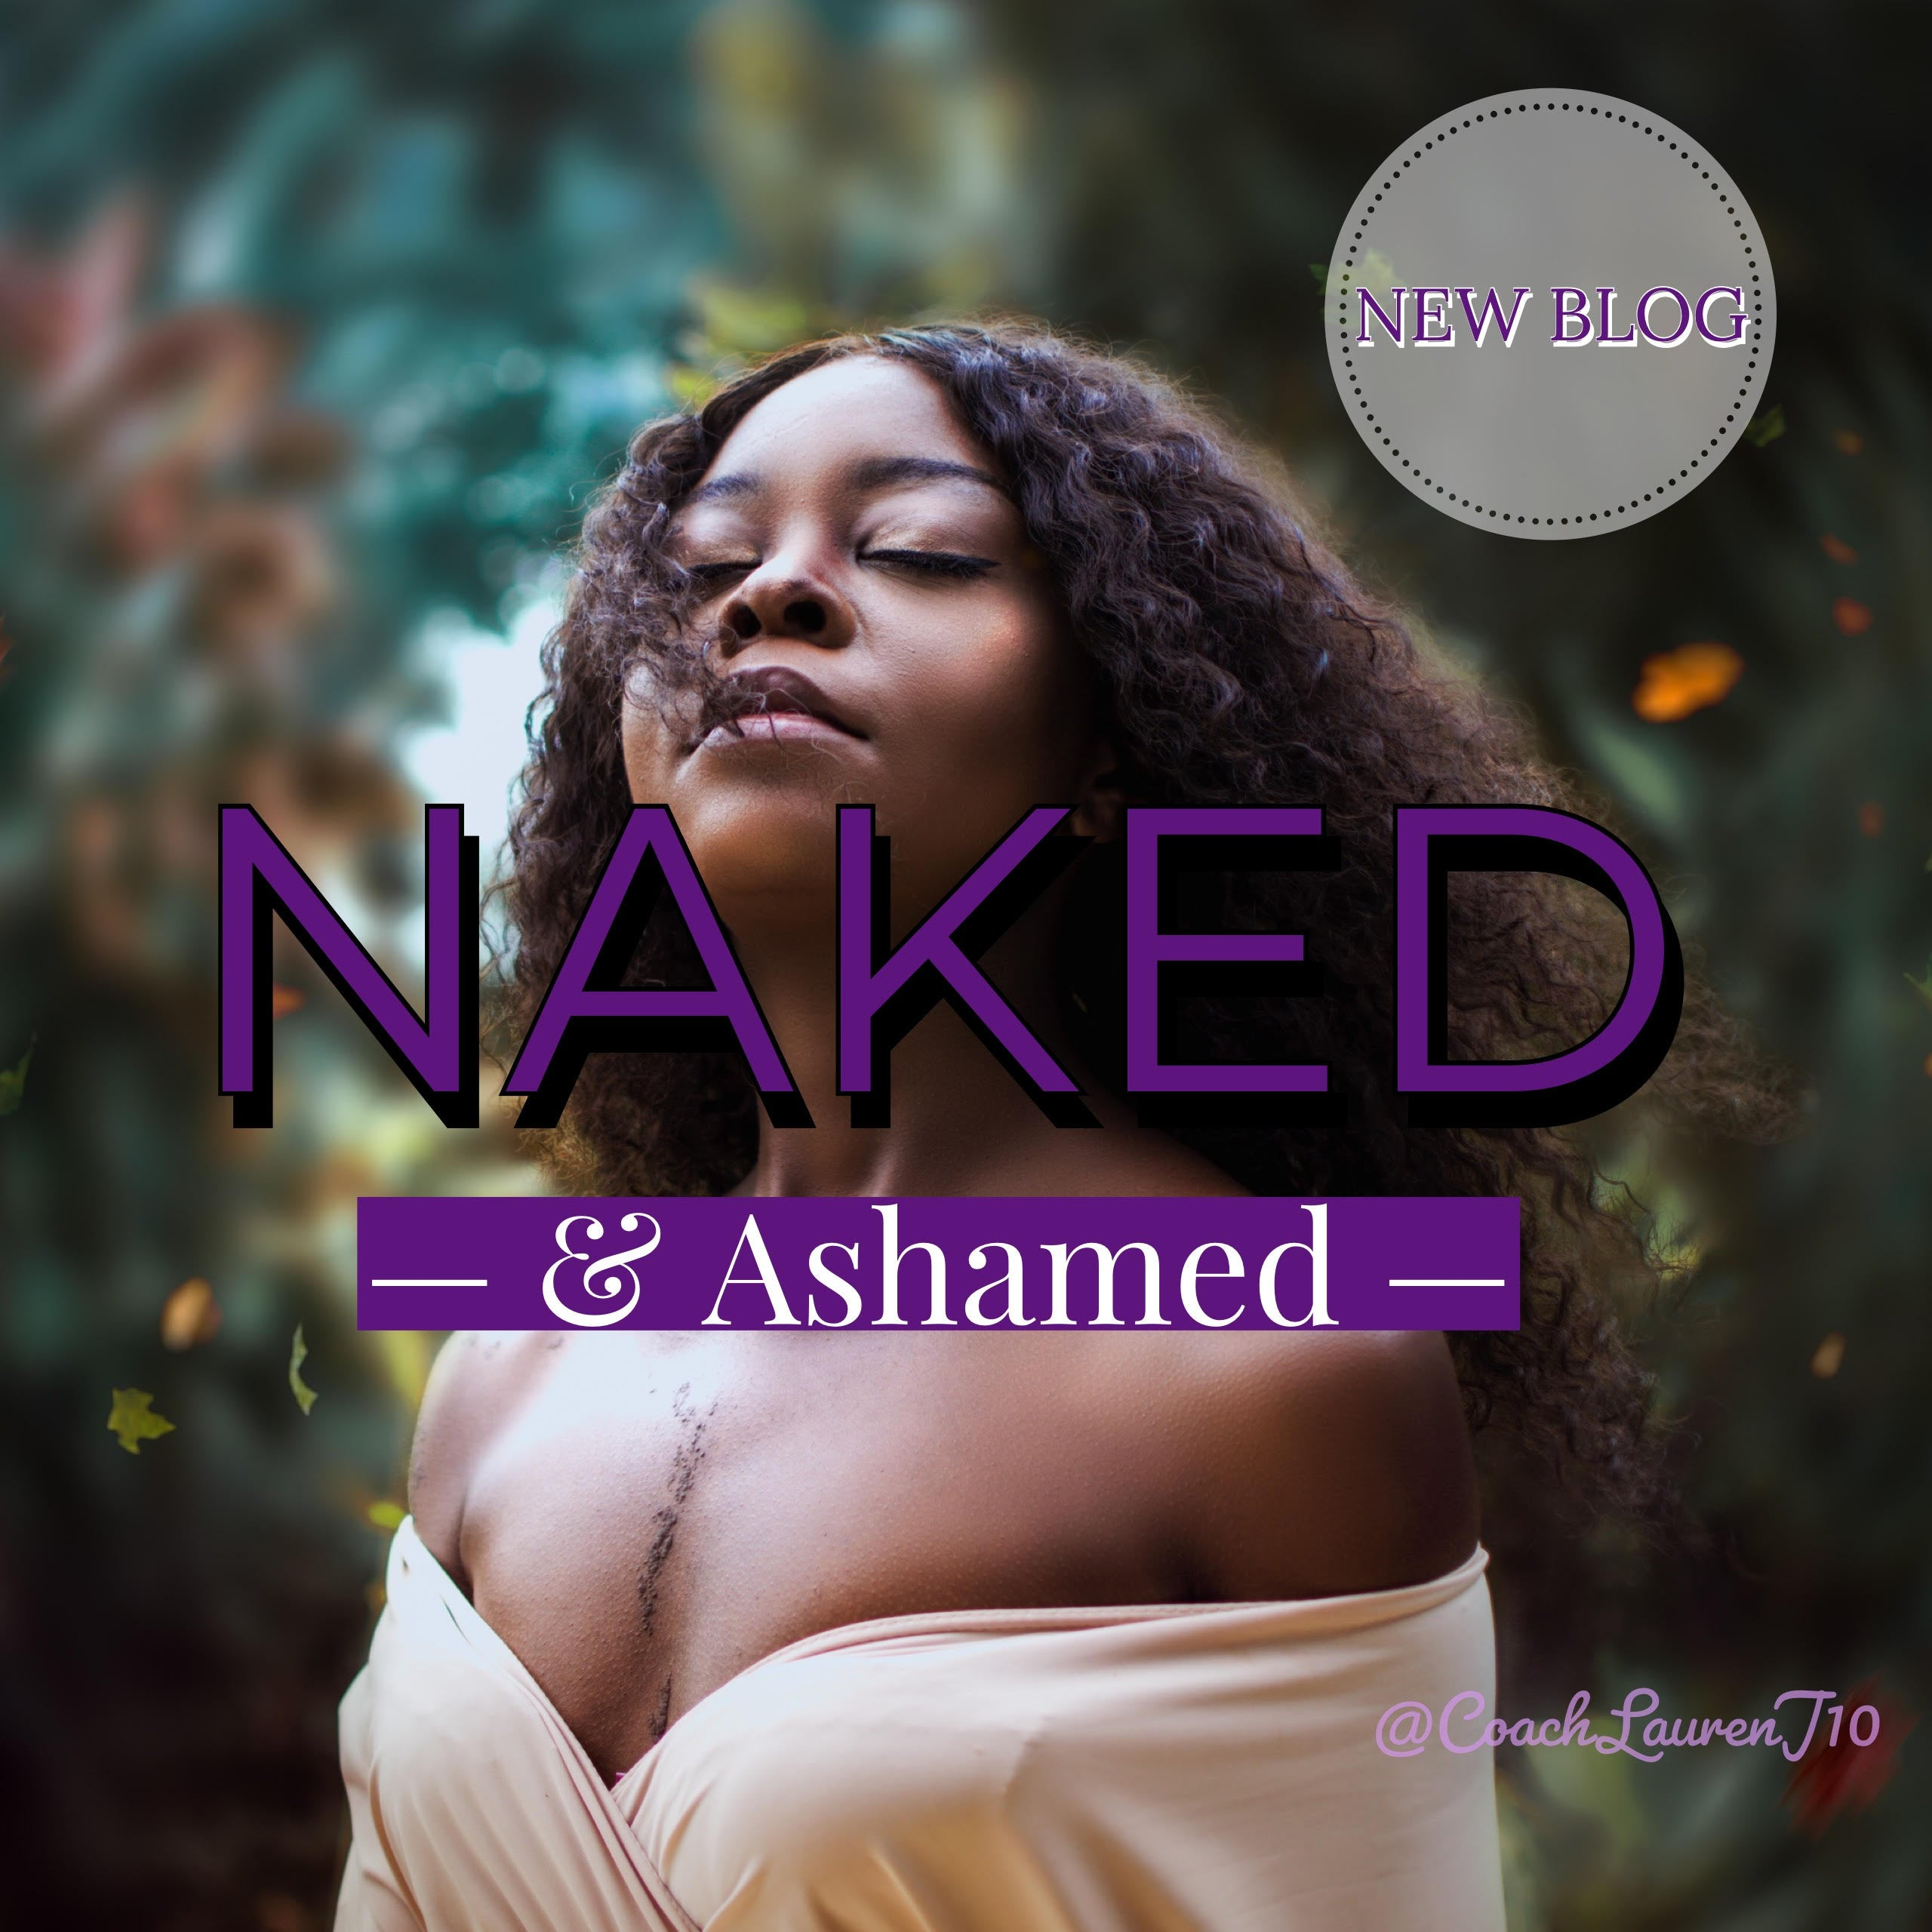 Naked & Ashamed Part II